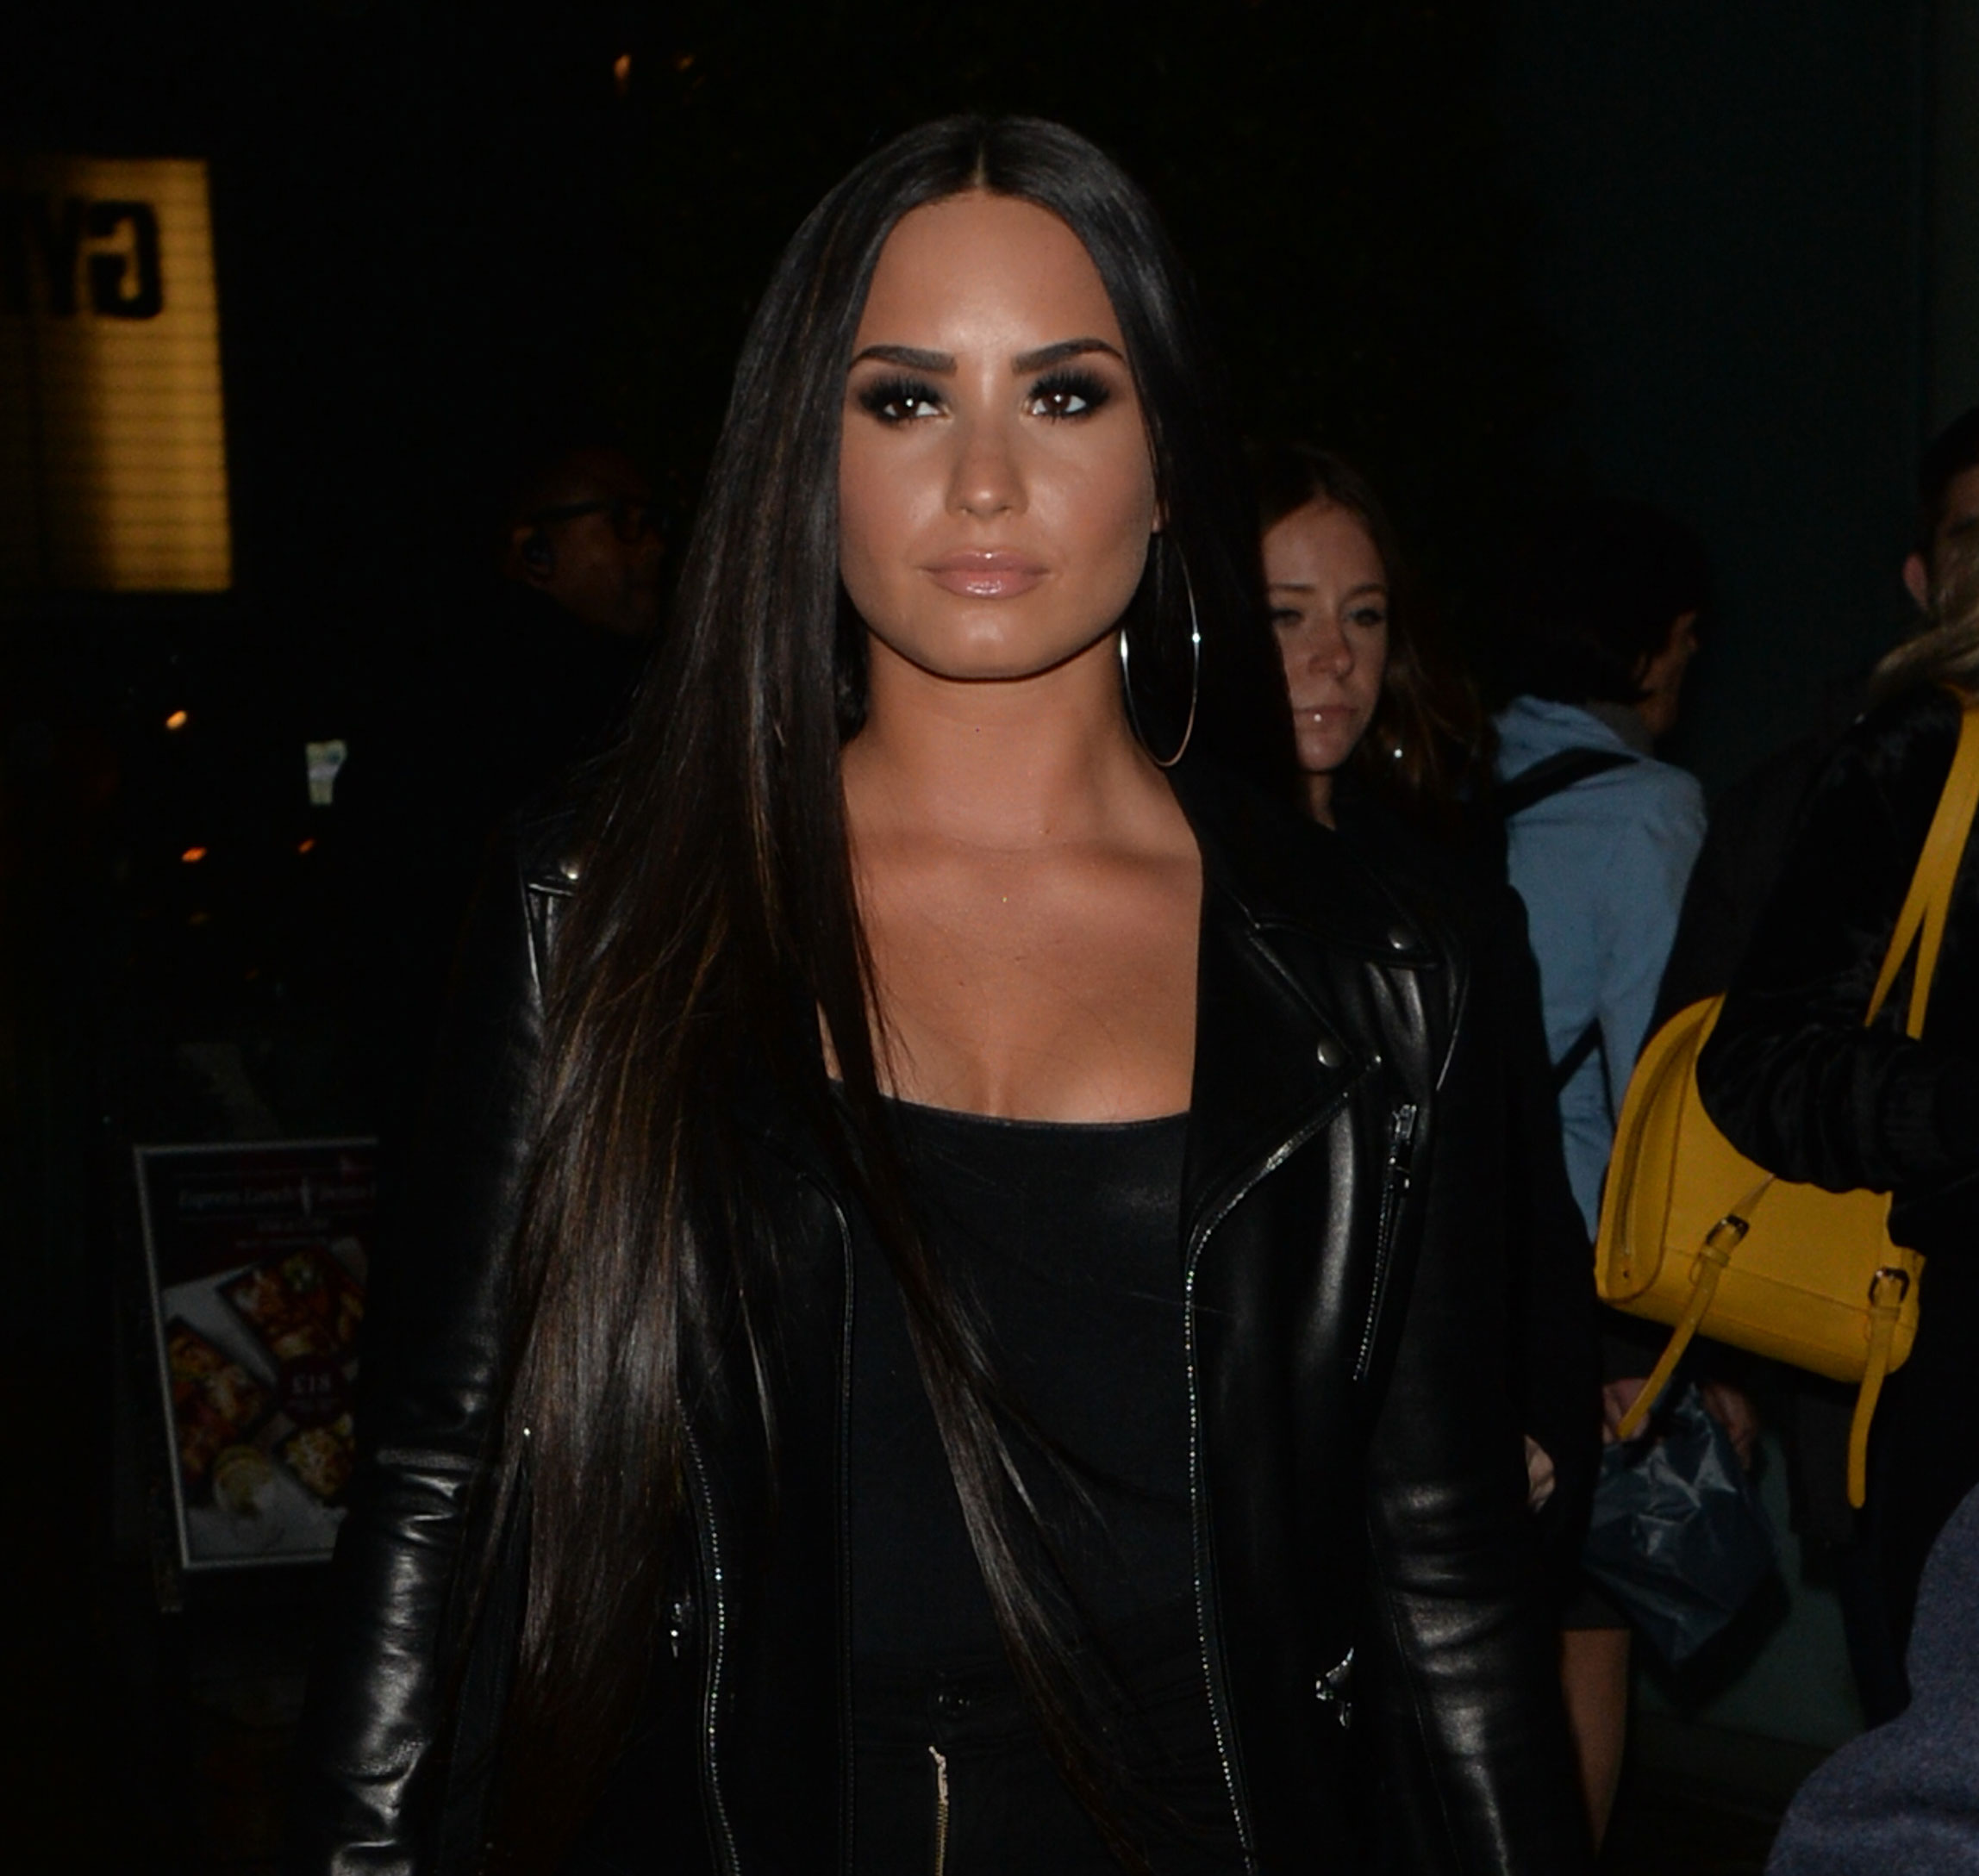 Demi lovato shows off soccer match chic look feature